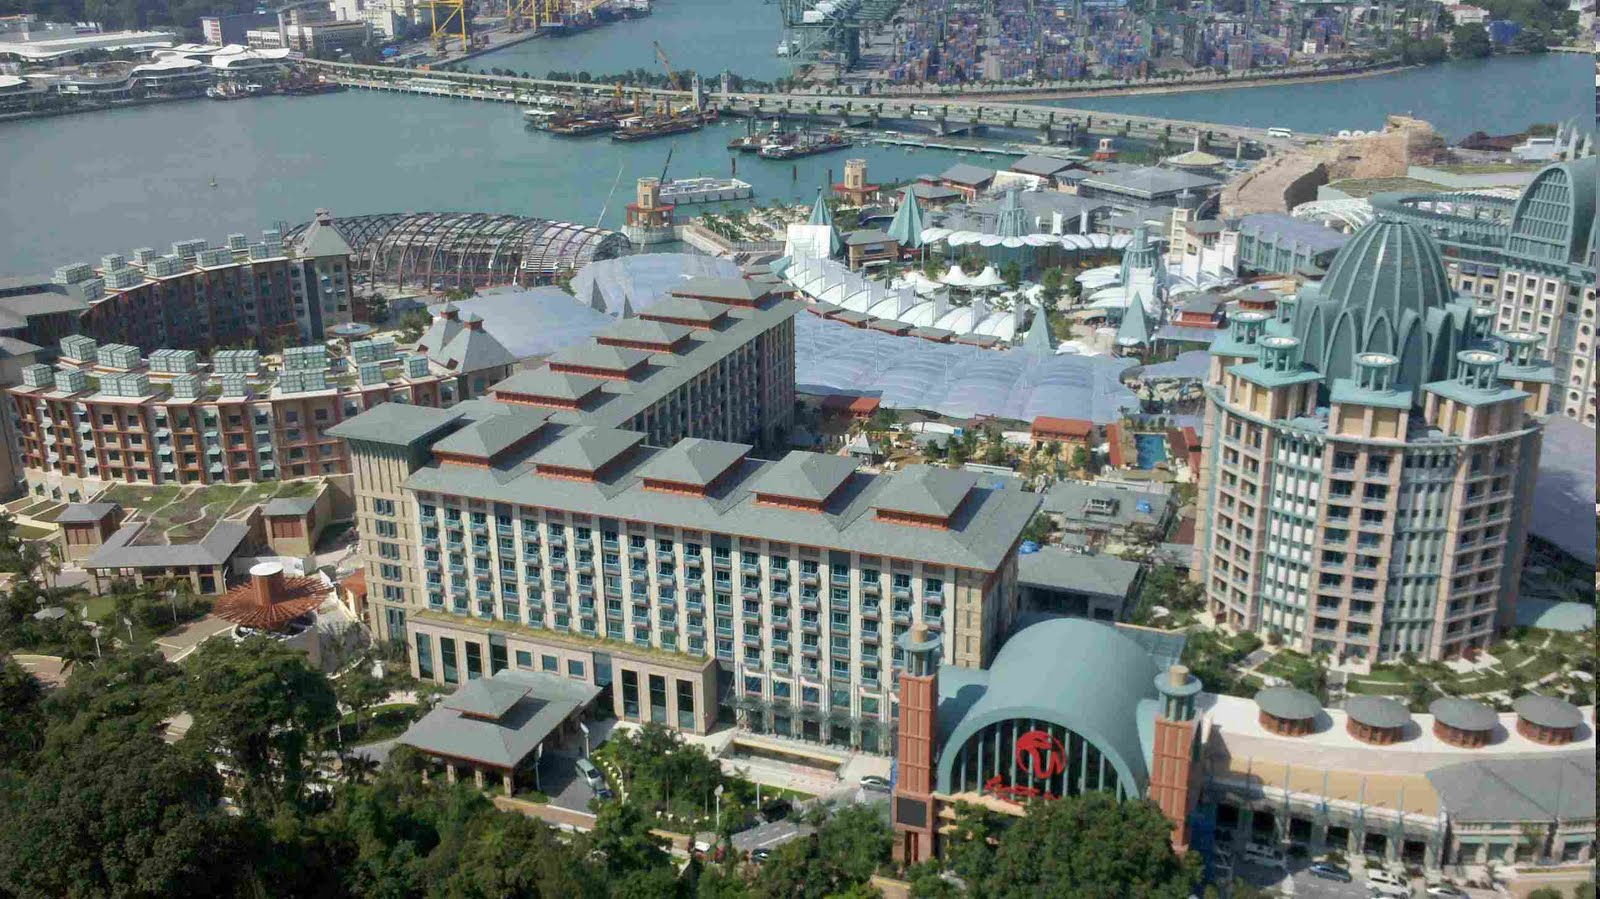 resort world sentosa Whether you are driving taking the bus, monorail, cable car or walking to resorts world sentosa, we've got you covered with this guide.